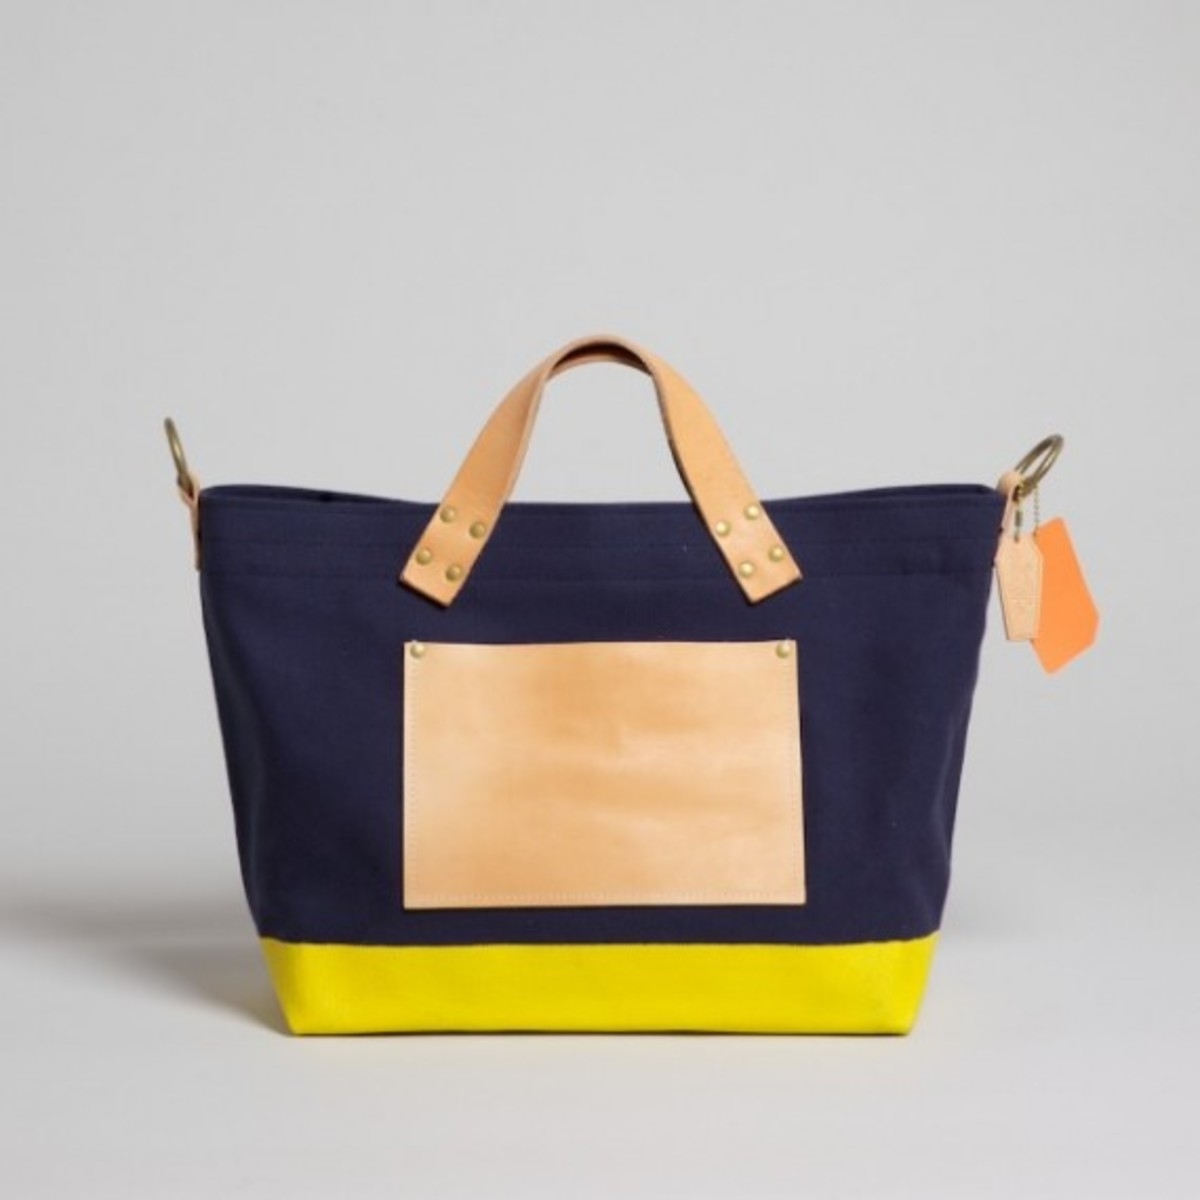 superior-labor-engineer-tote-bag-04